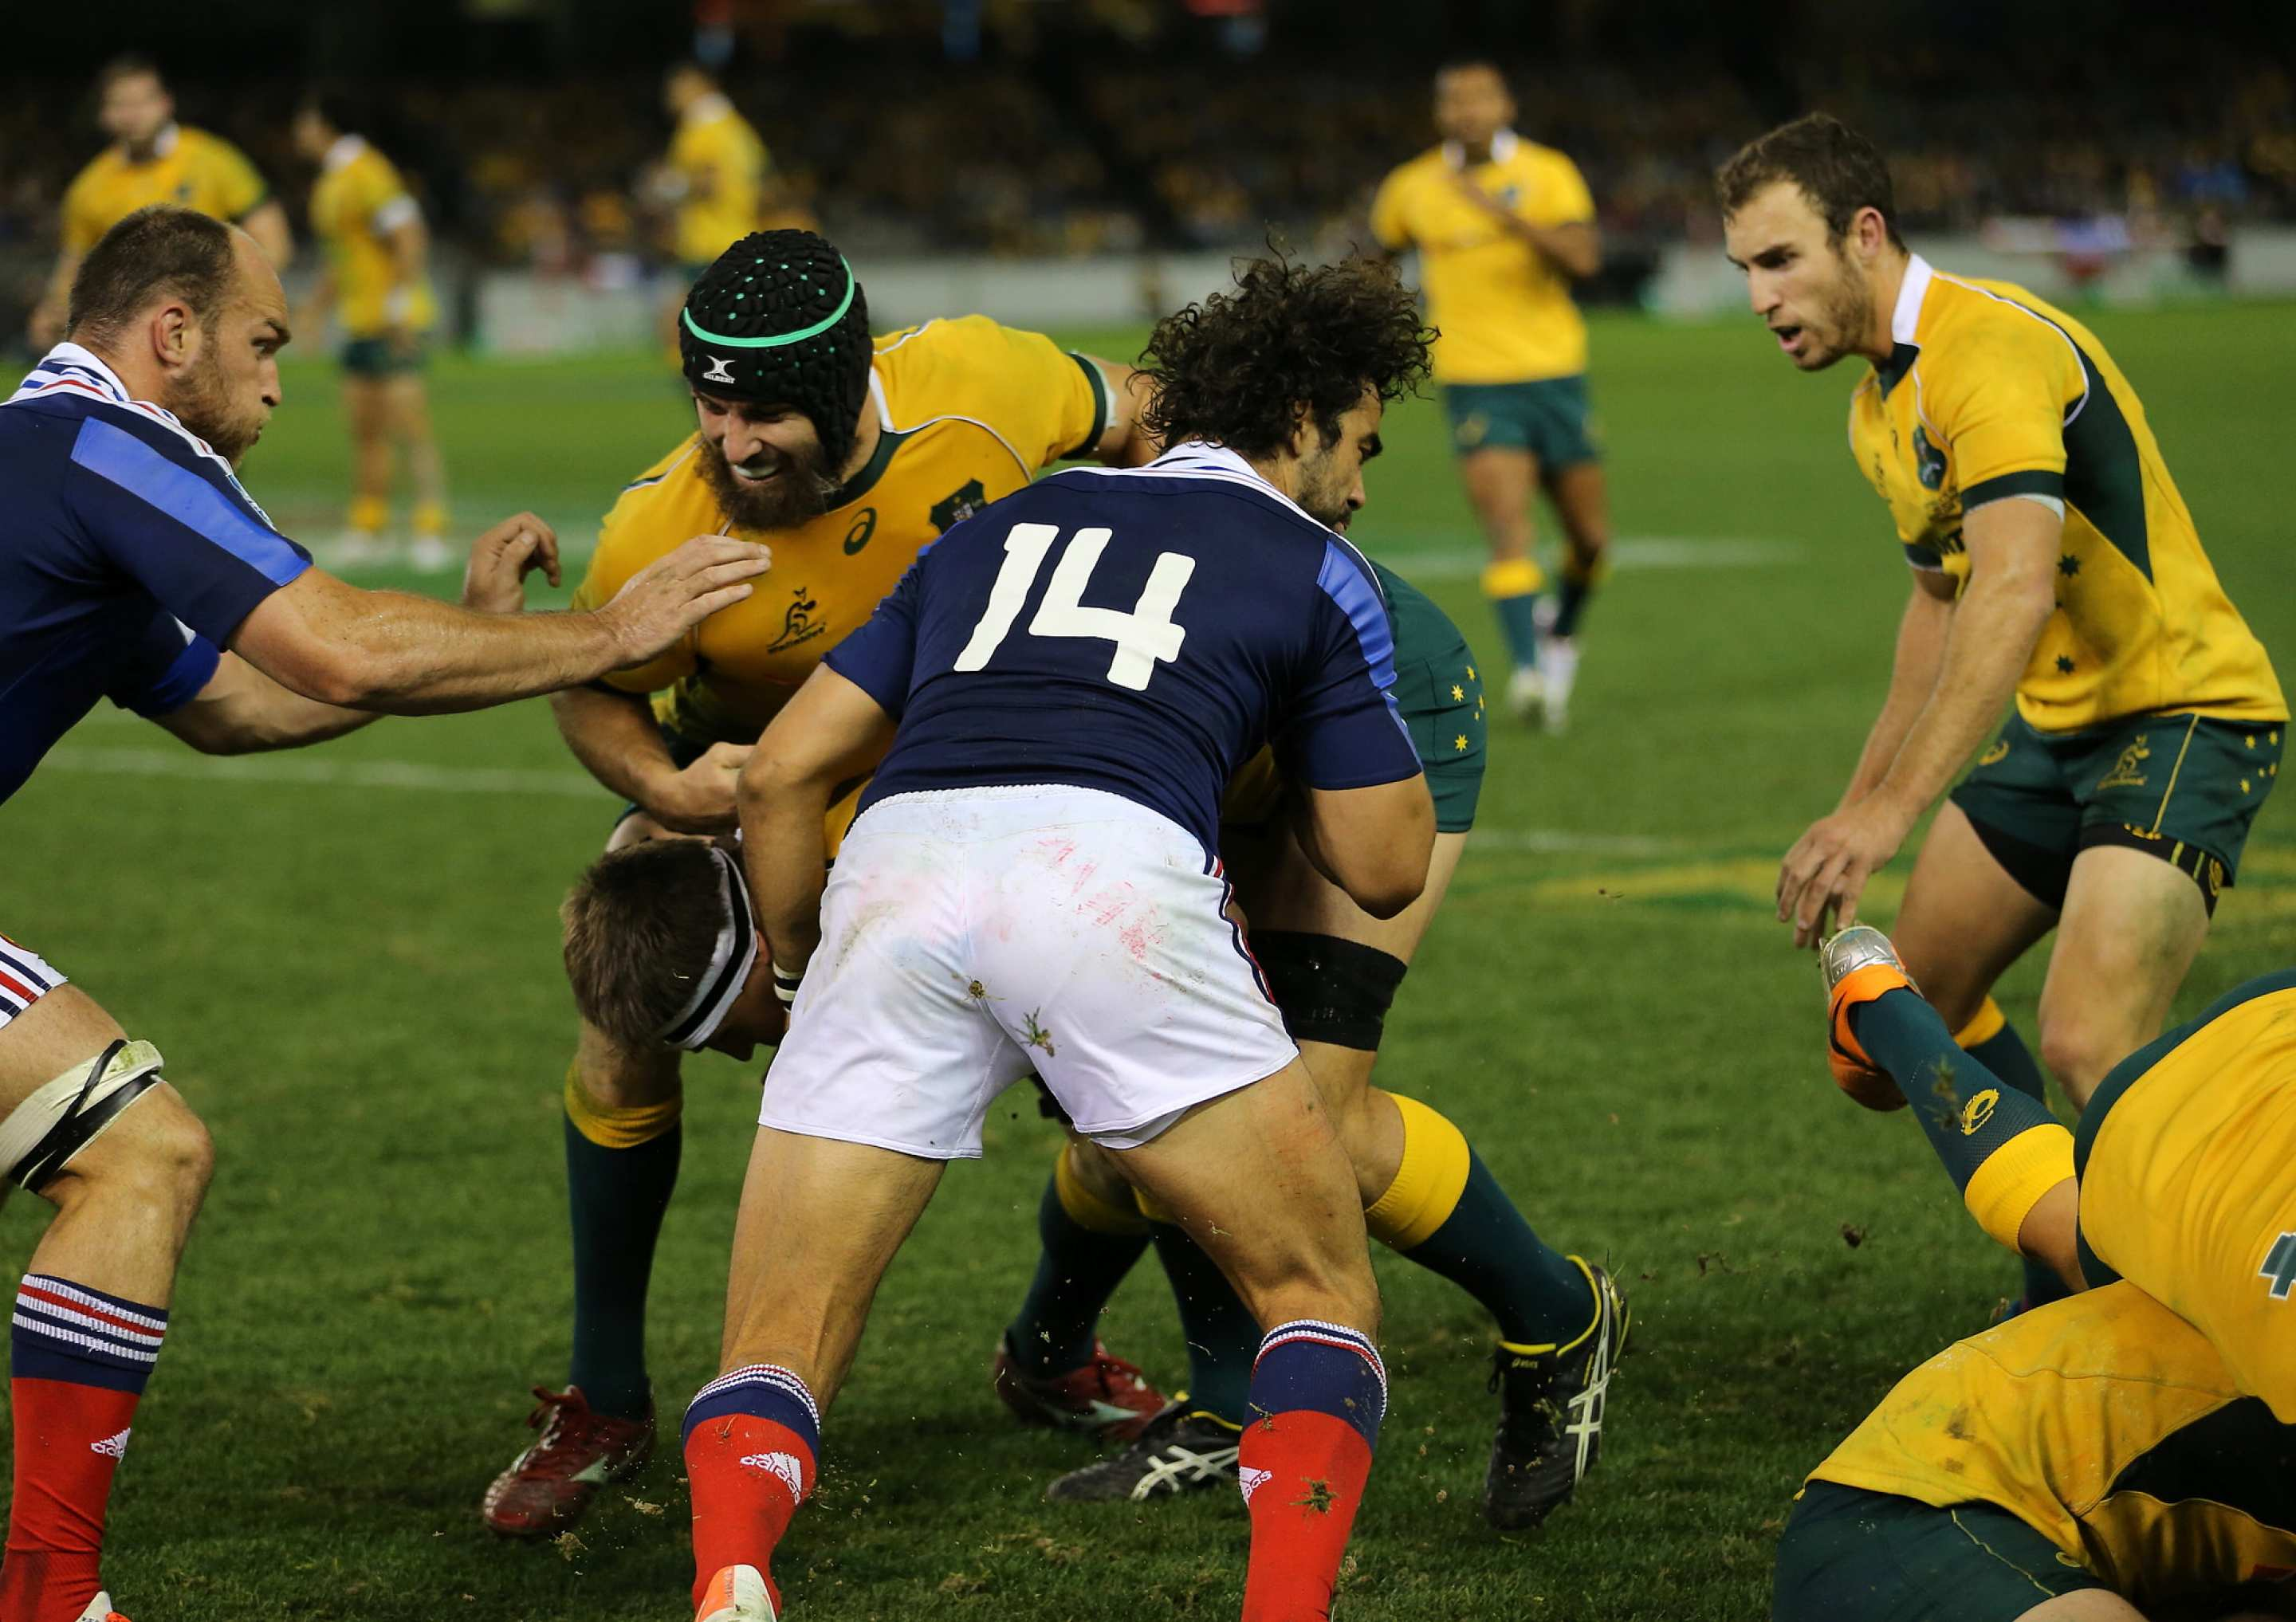 Wallabies play France